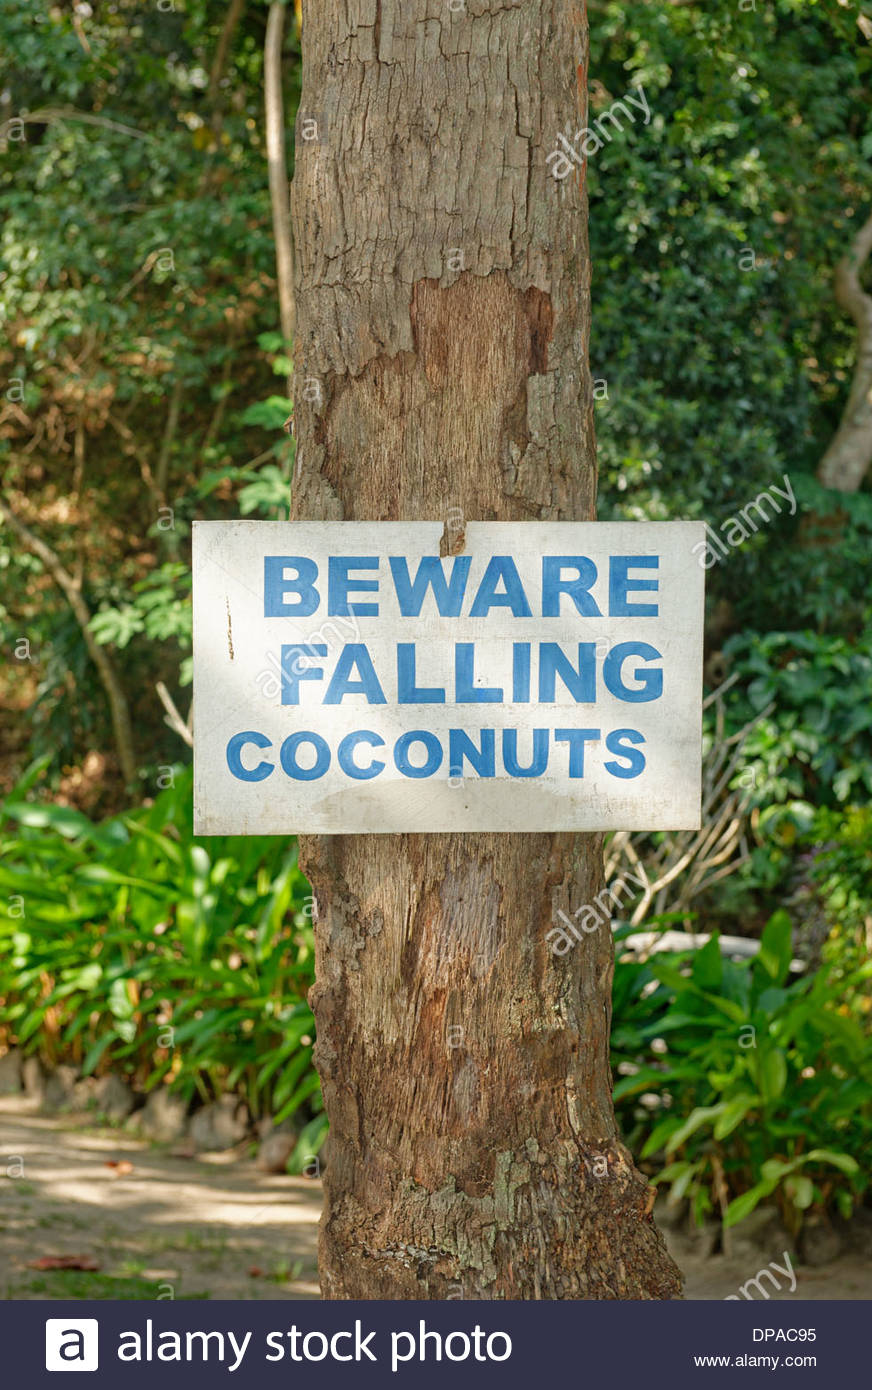 Beware of falling coconuts sign, Yasawa island group, Fiji, South Pacific islands - Stock Image